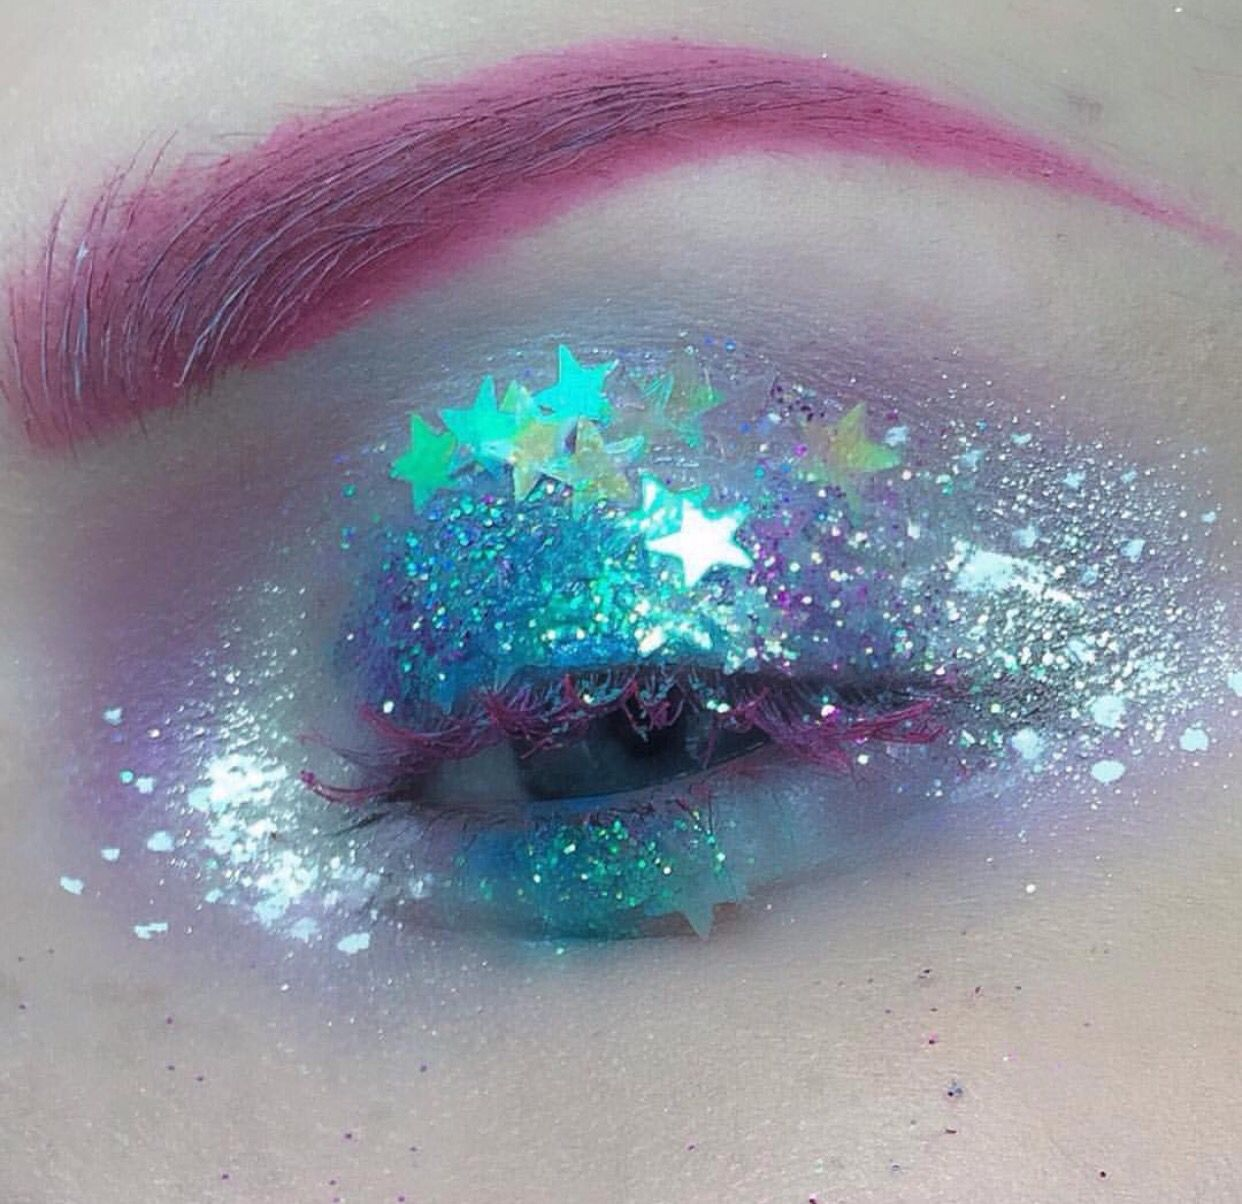 Galaxy eyes. Beautiful and ouch at the same time.